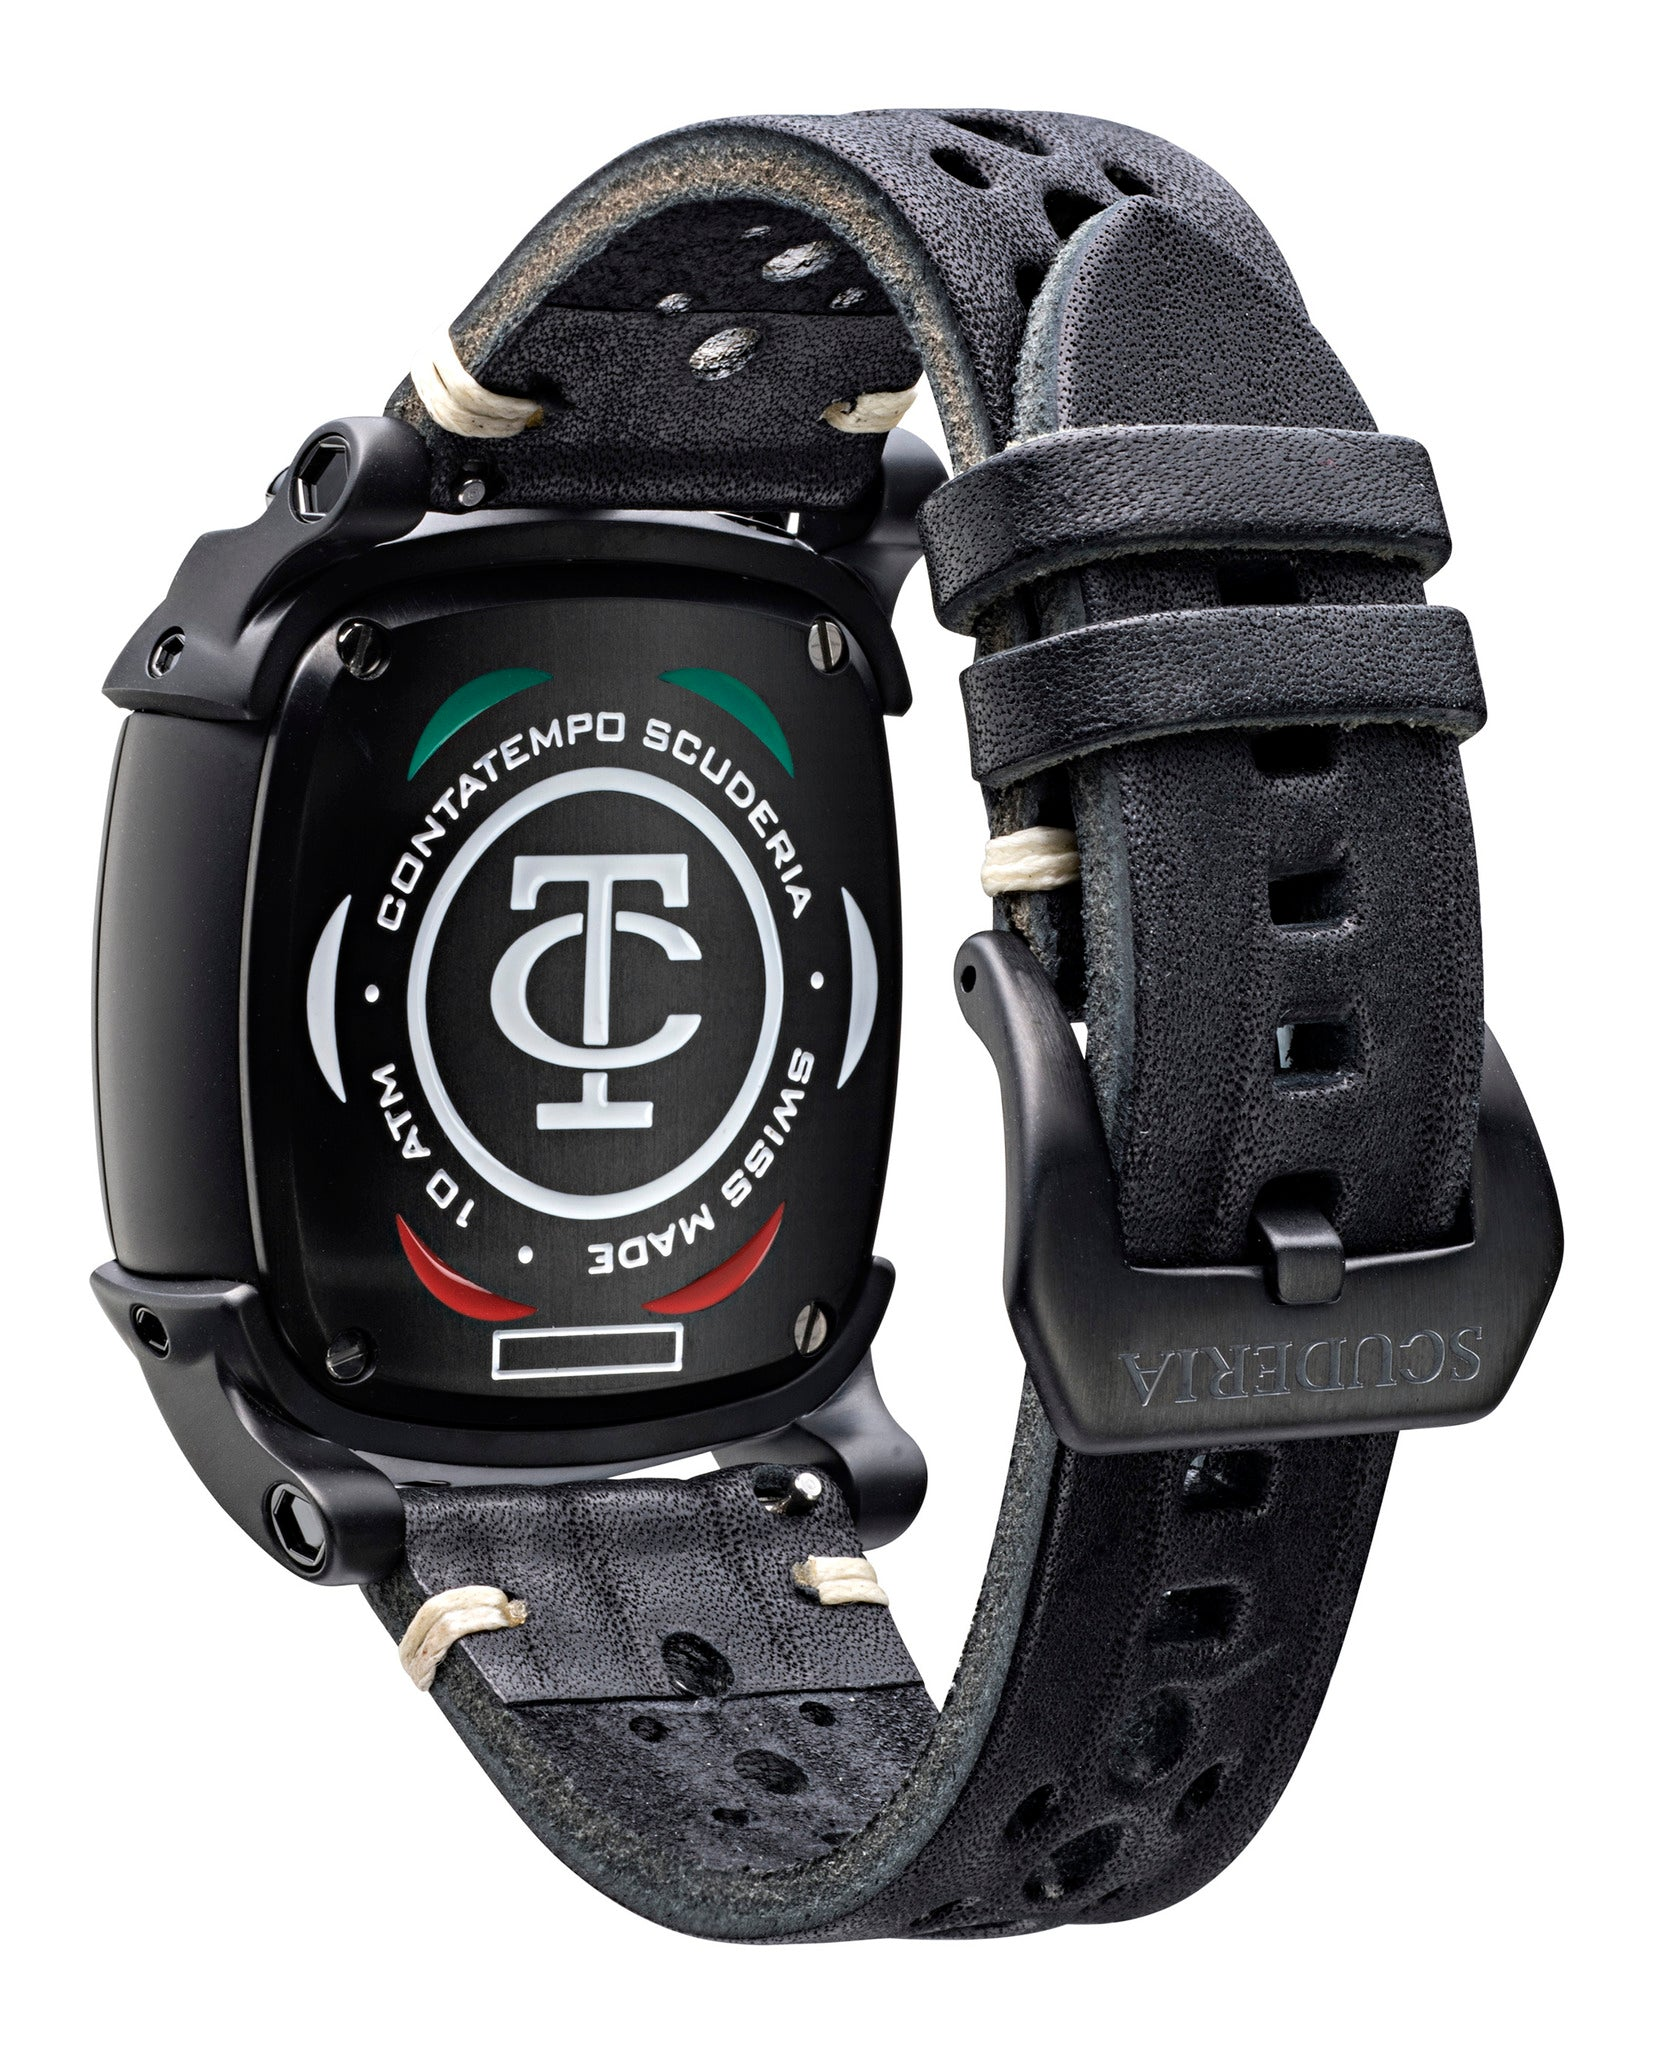 CT Scuderia Saturno Watch